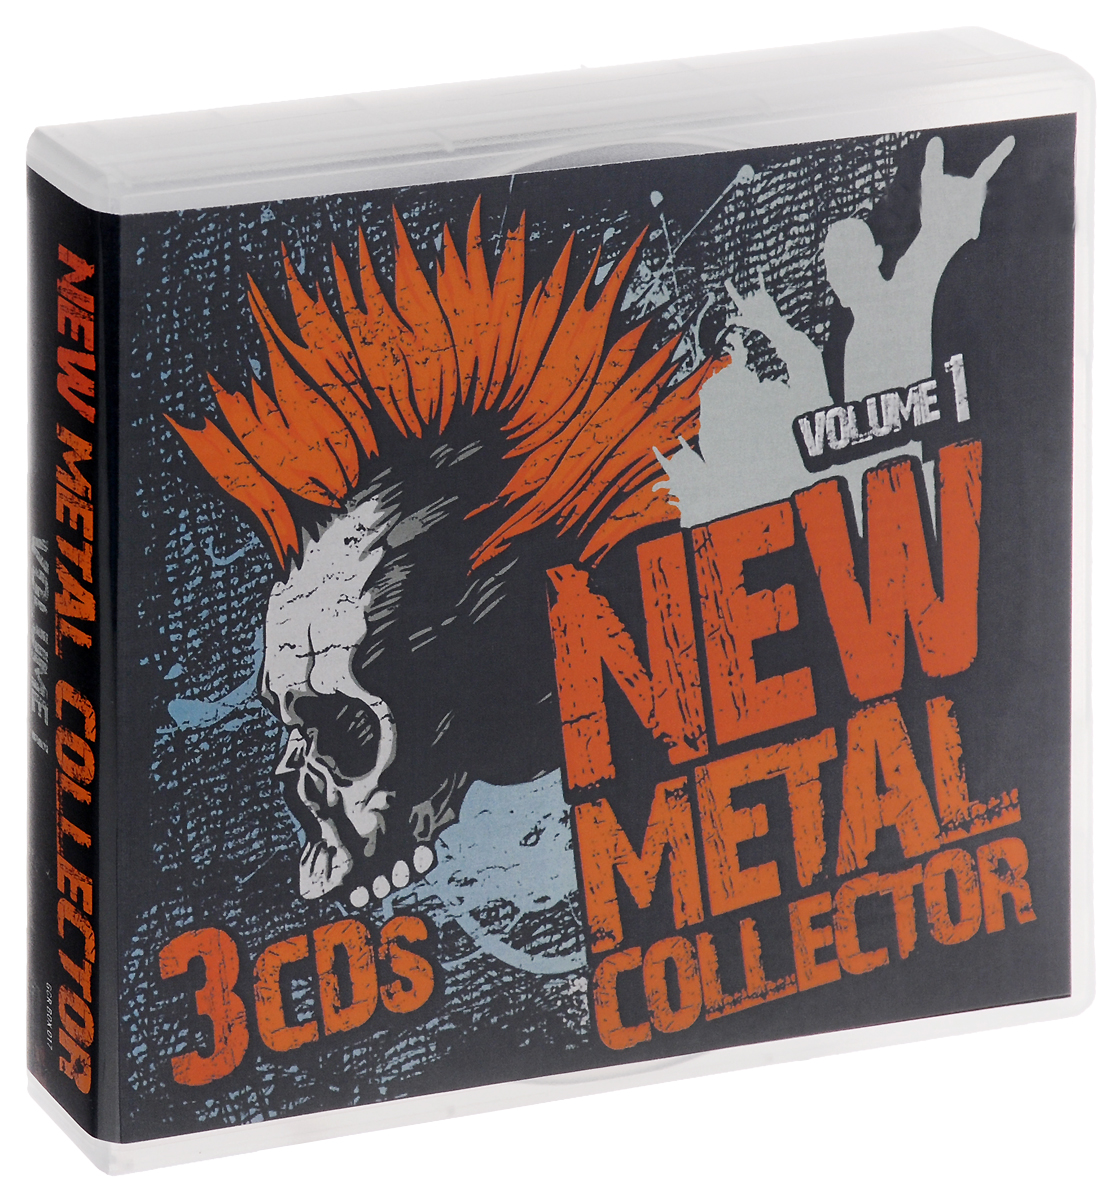 New Metal Collector. Vol. 1 (3 CD)